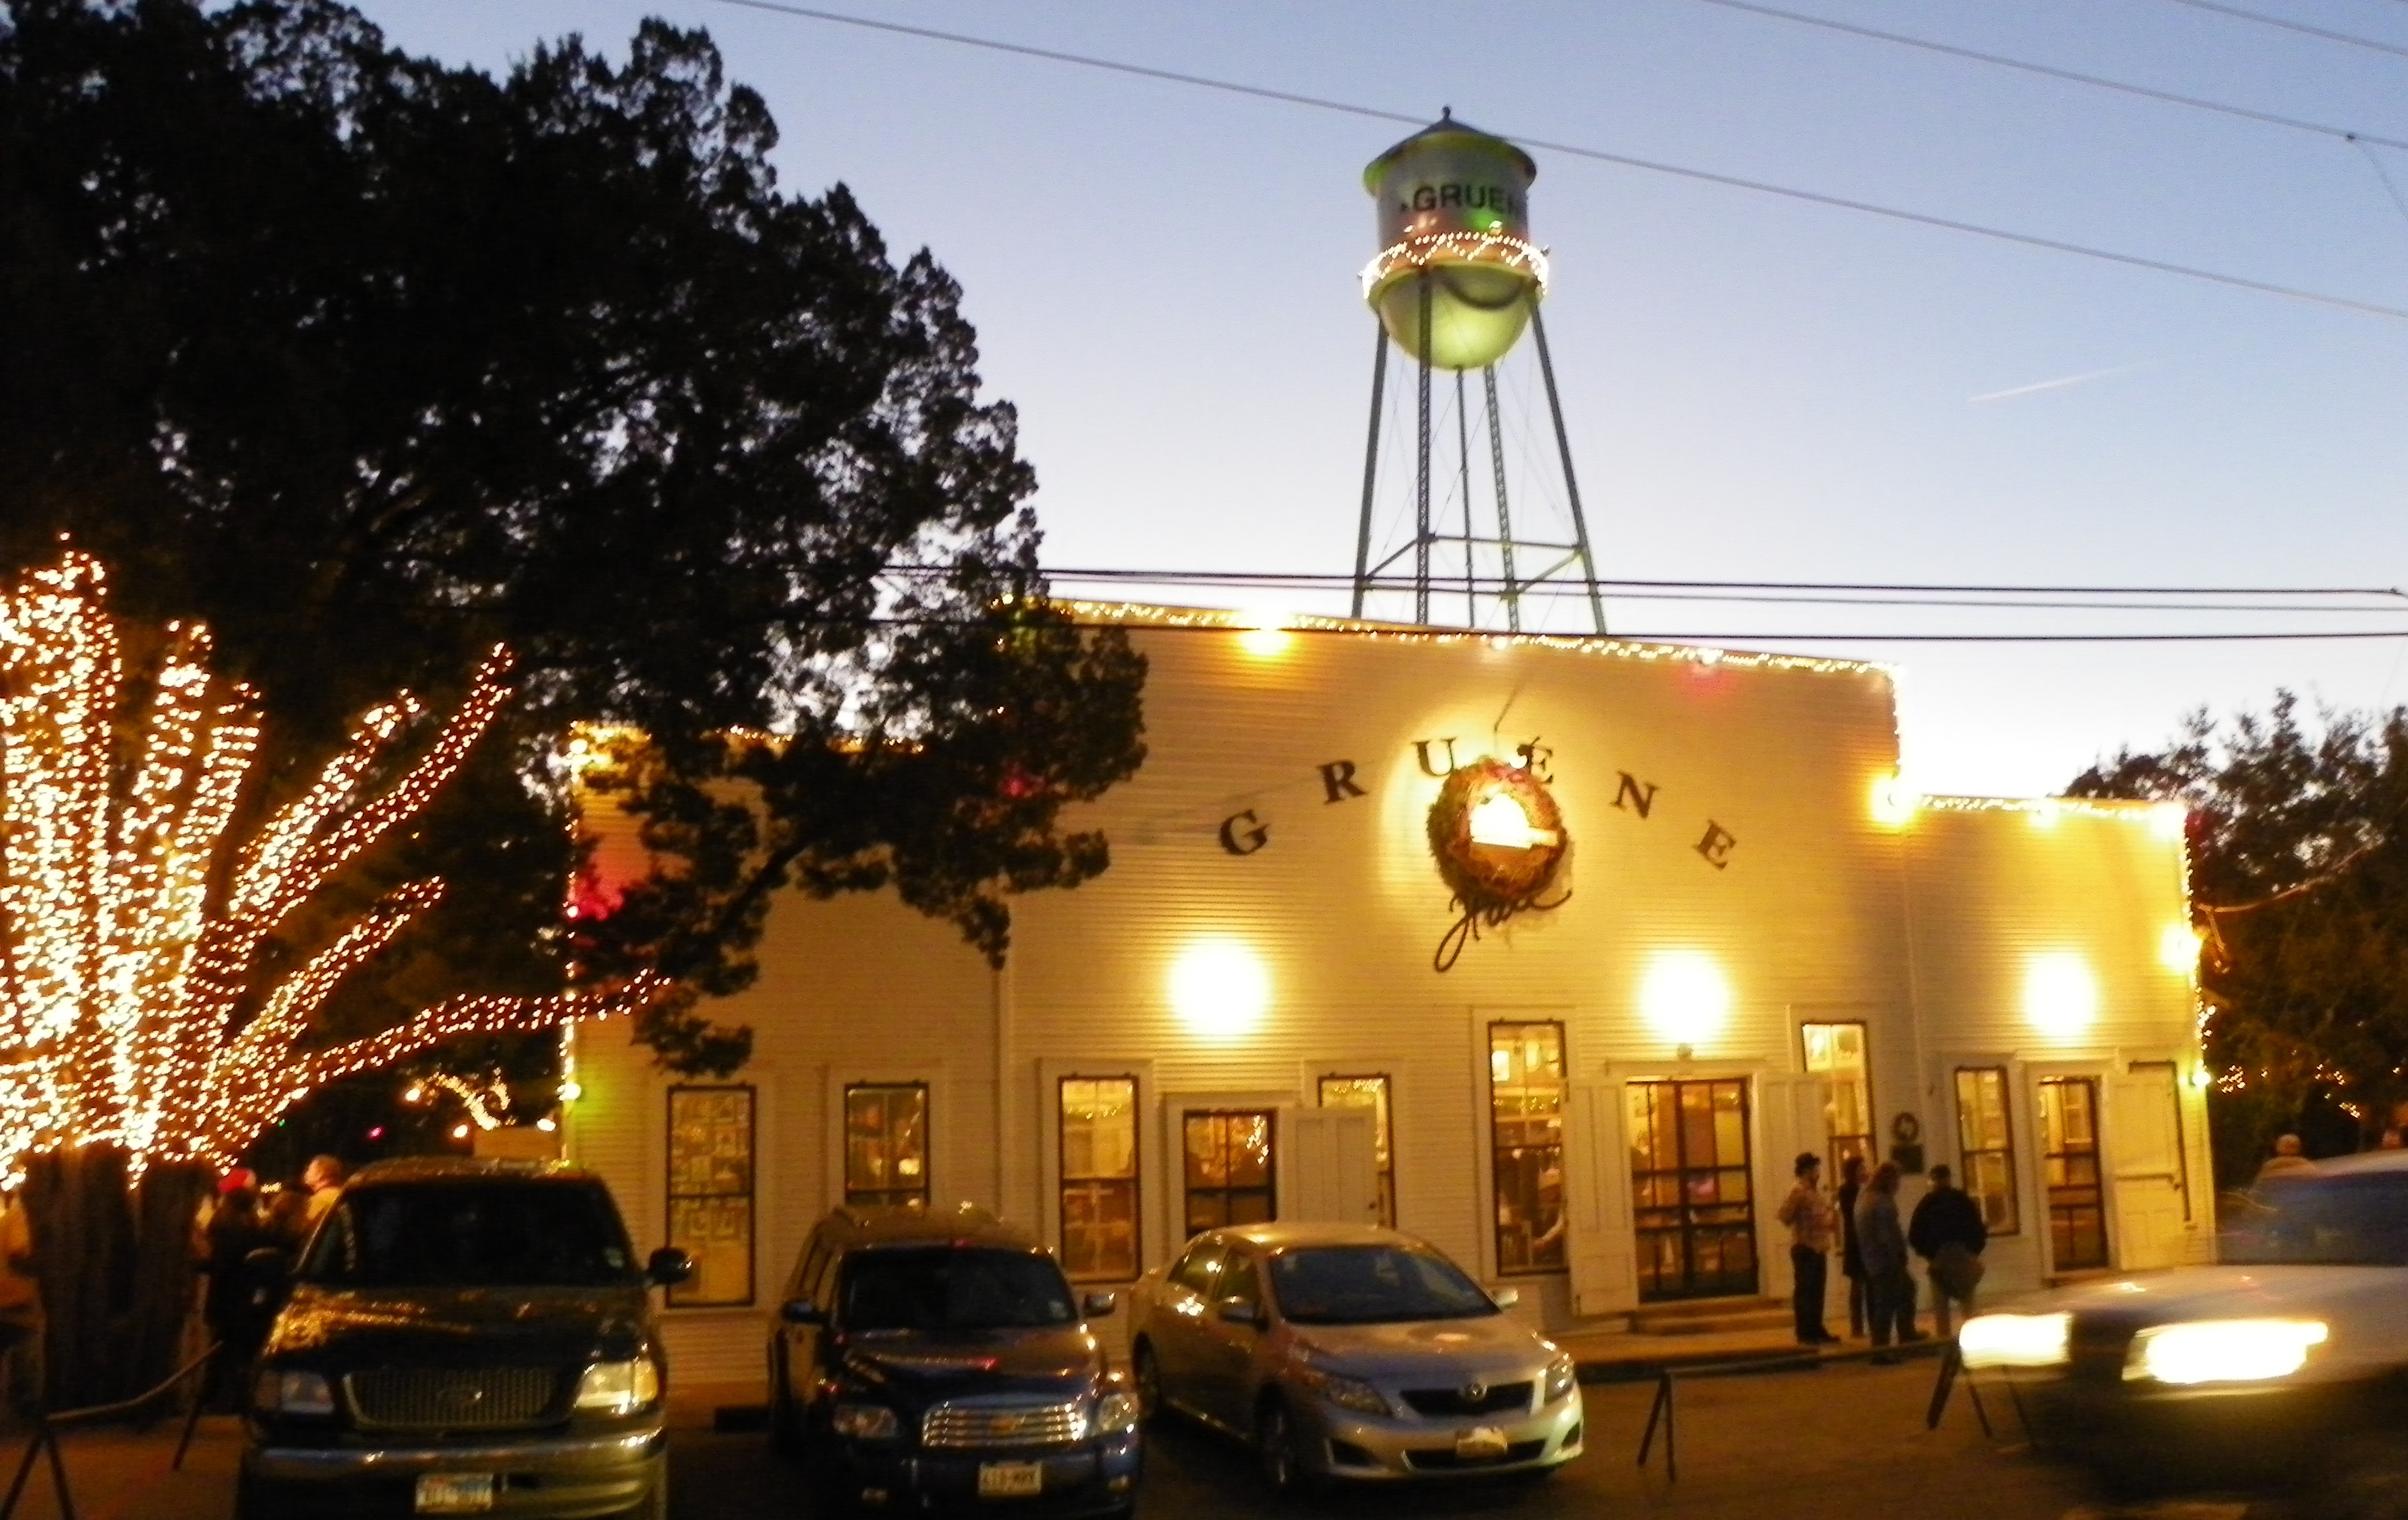 Land For Sale In San Antonio Tx >> Gruene Real Estate – Realtor, Property Manager, New Braunfels, Commercial